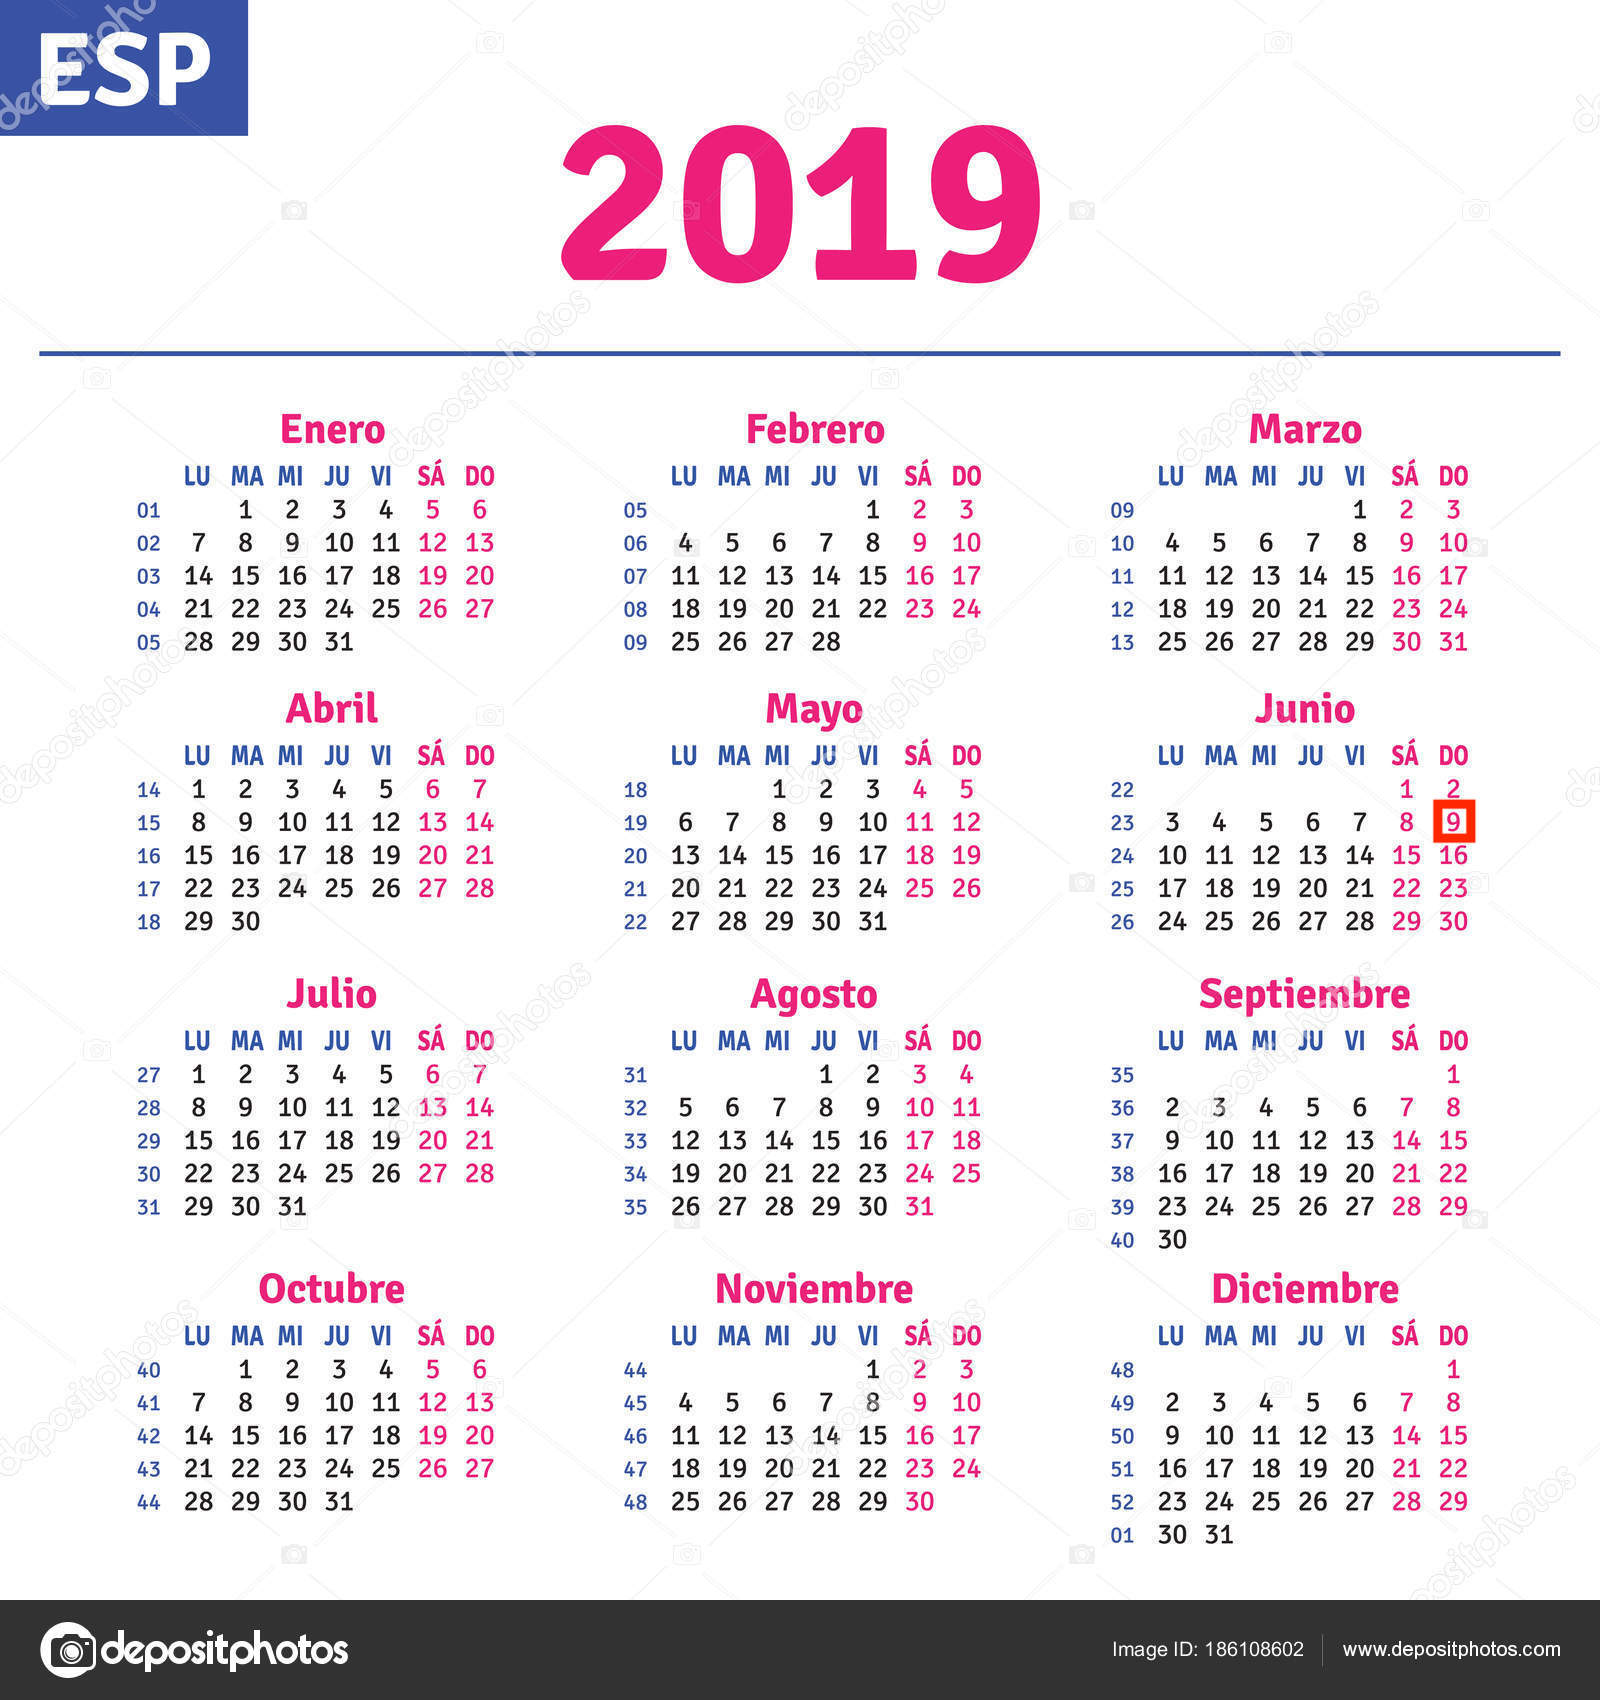 depositphotos_186108602-stock-illustration-spanish-calendar-2019.jpg